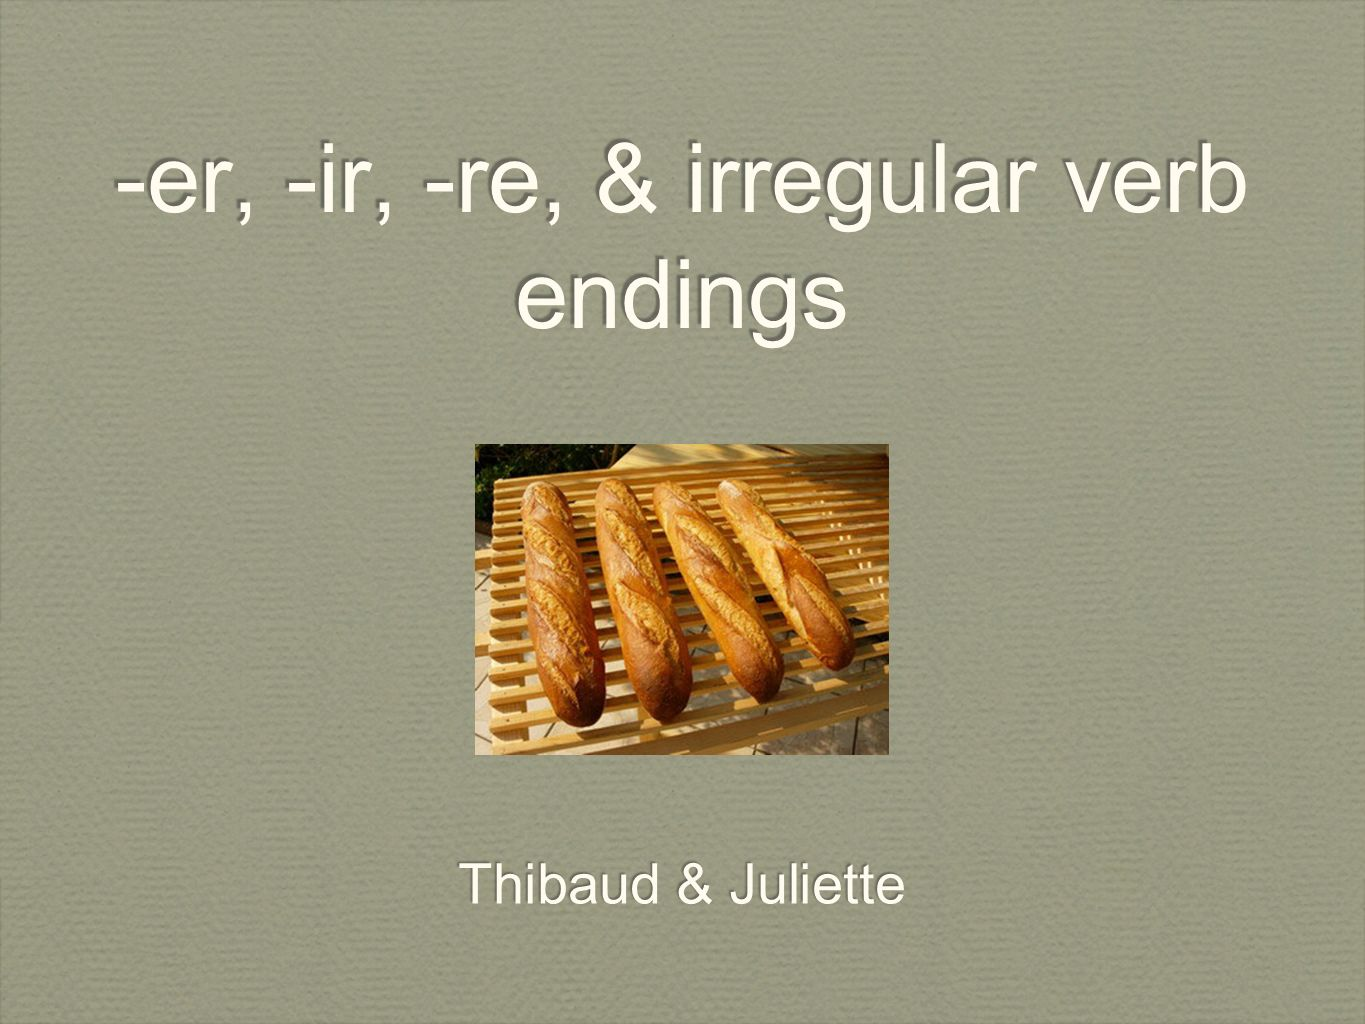 -er, -ir, -re, & irregular verb endings